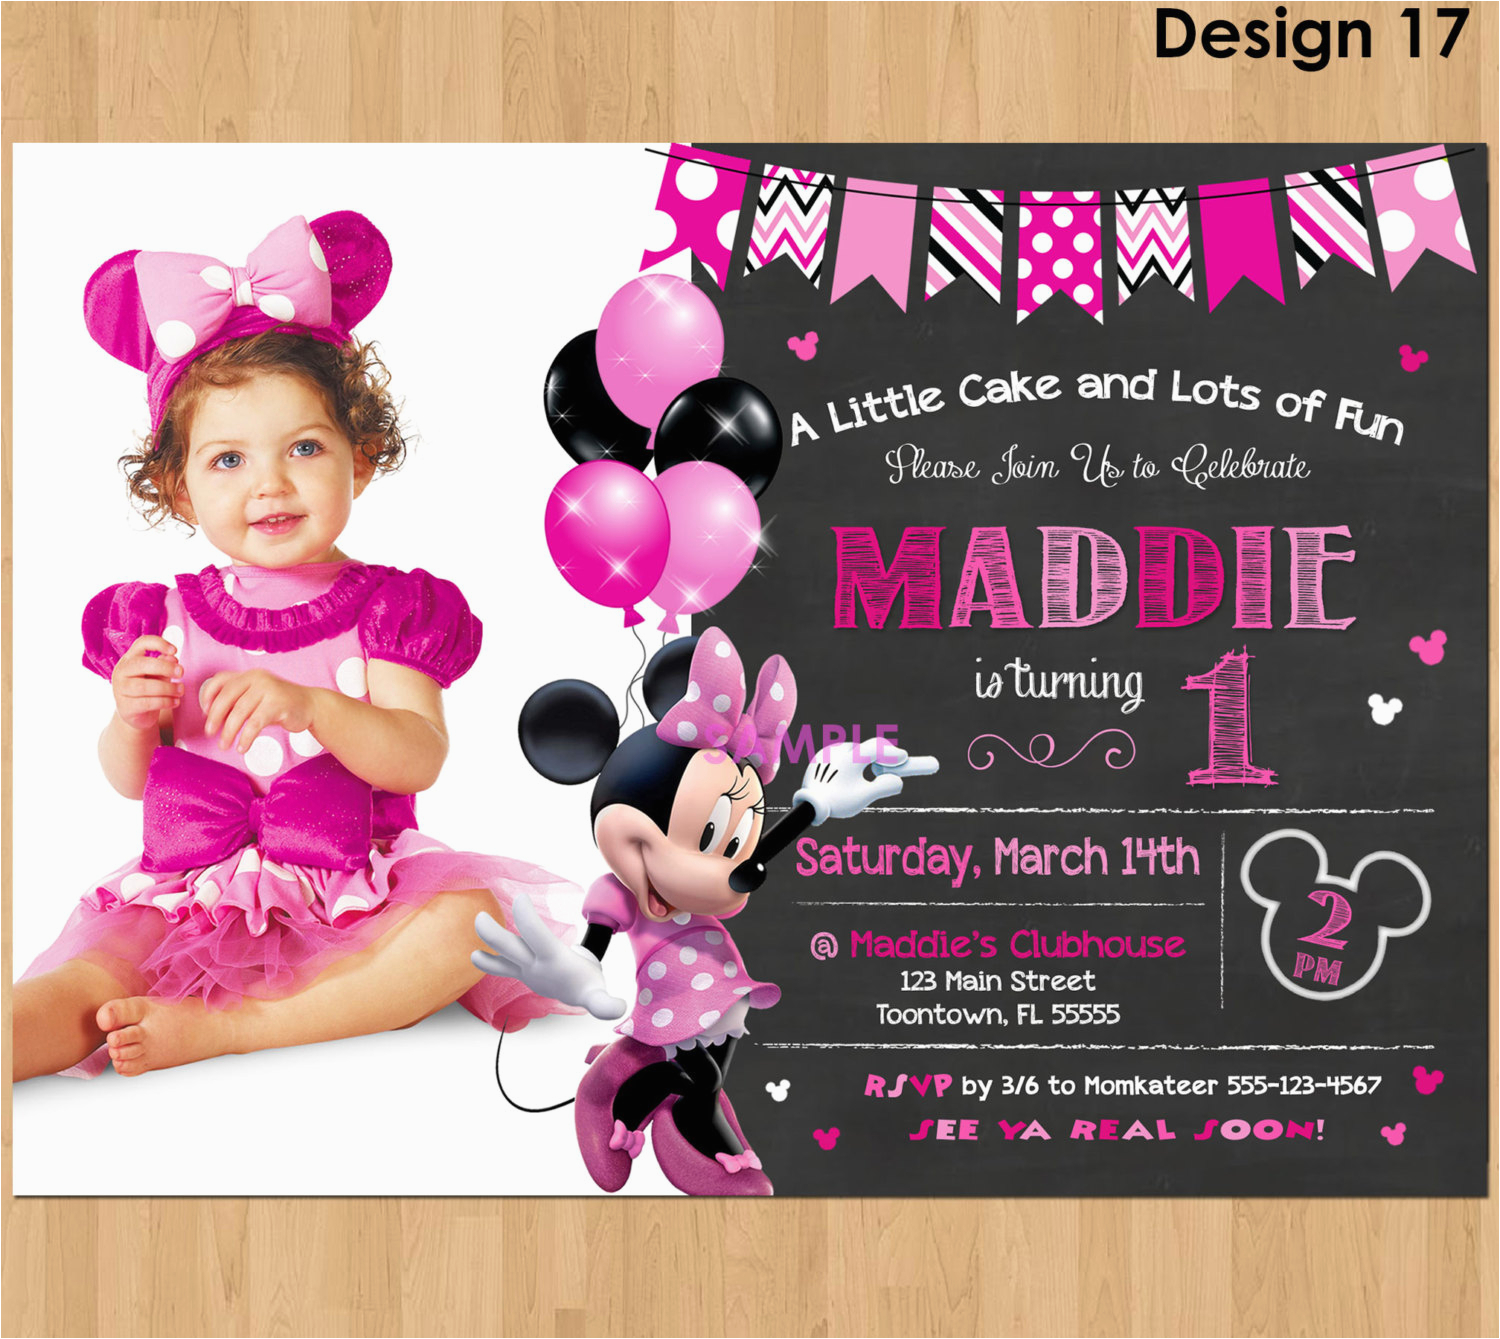 Design 1st Birthday Invitations Free Minnie Mouse First Designs